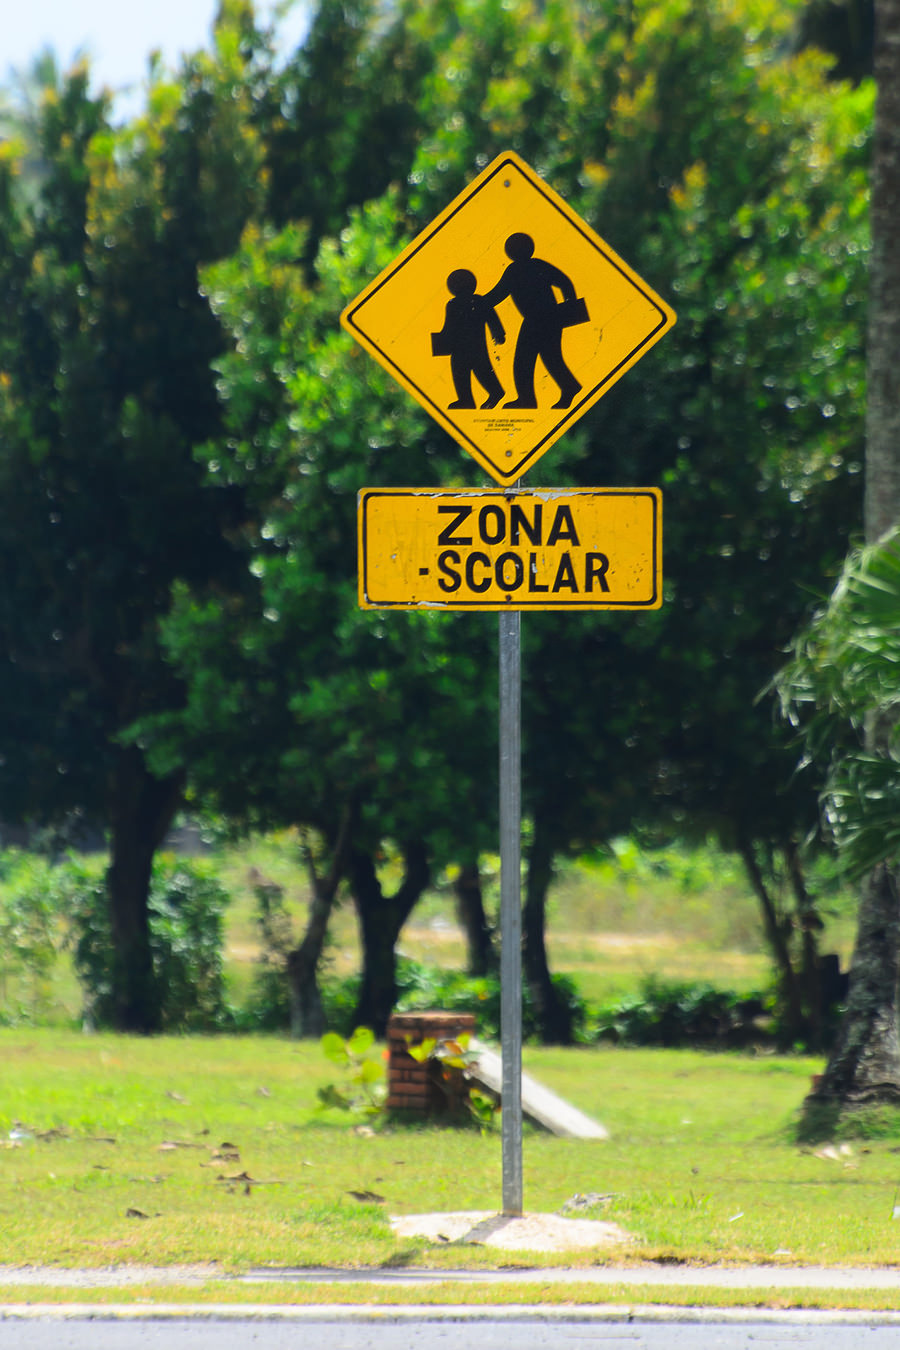 Dominican Republic — Zona scolar (school zone) road sign